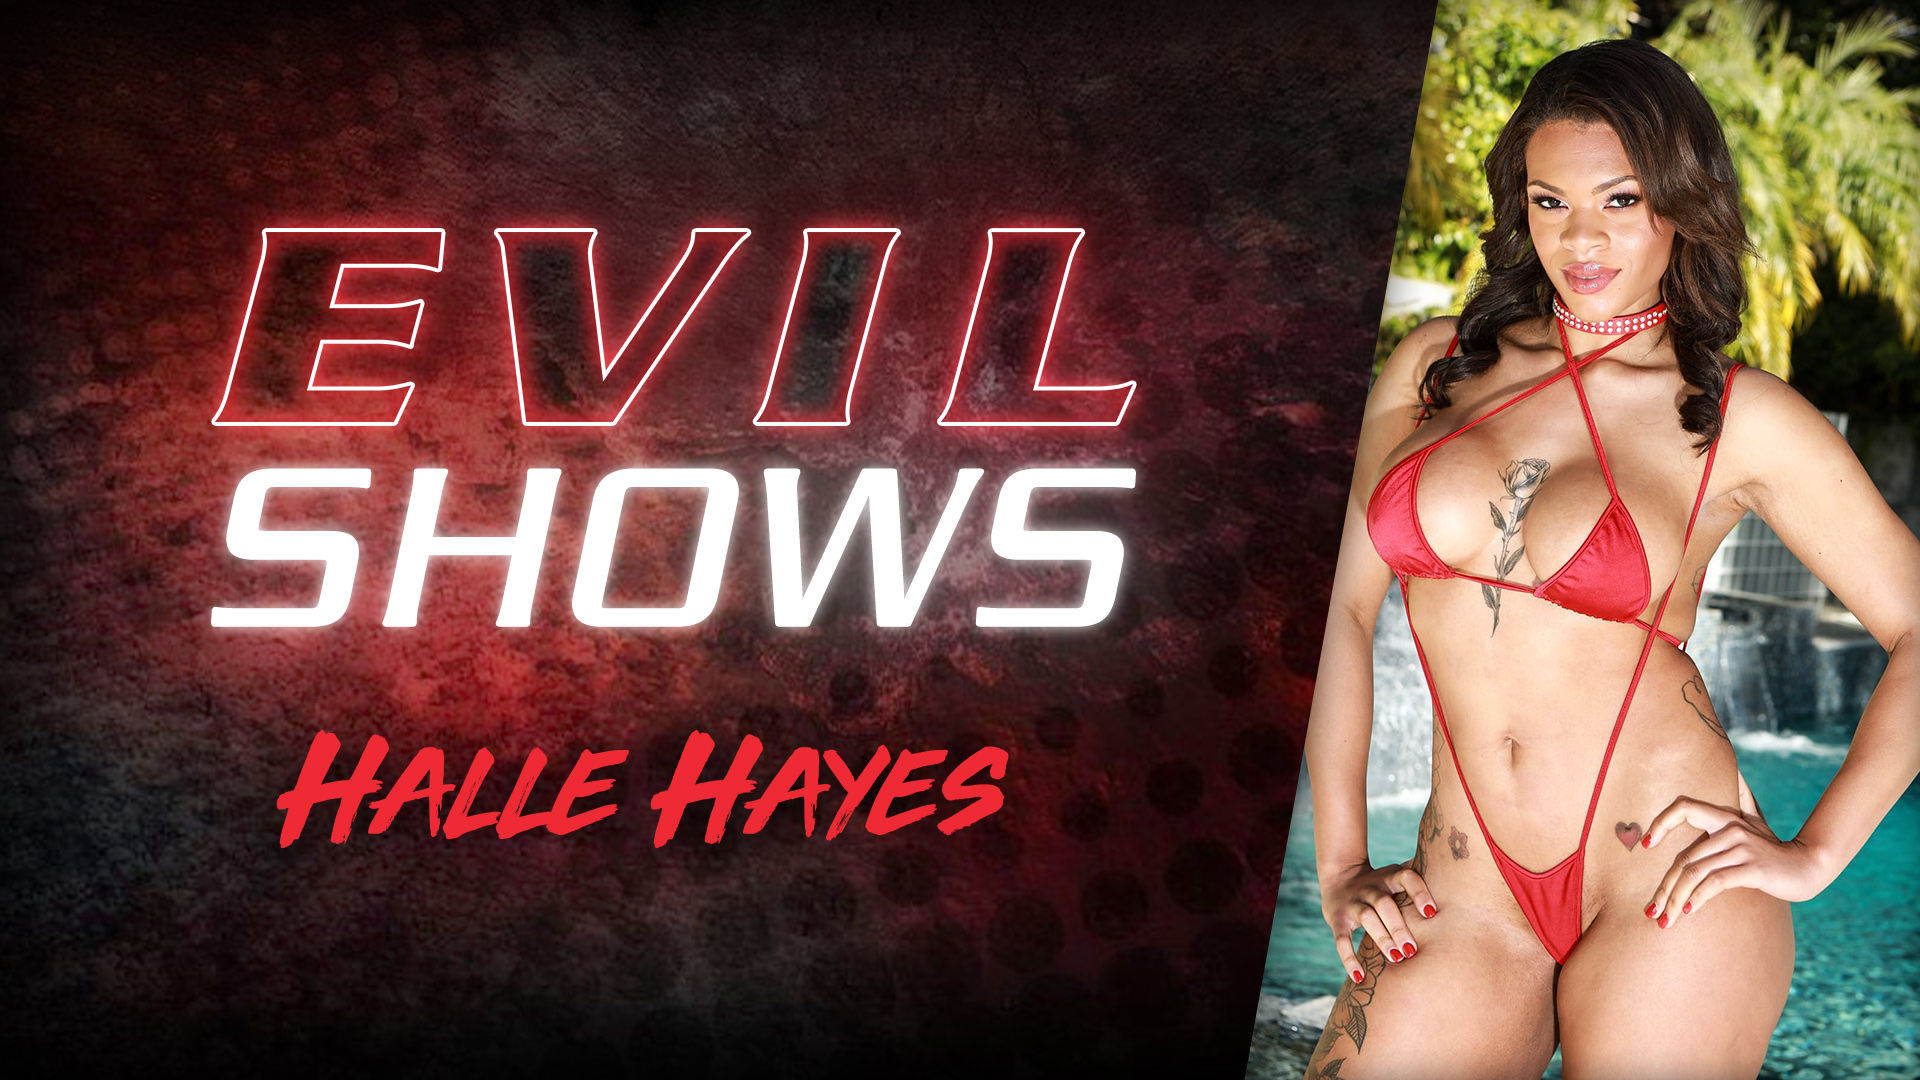 Evil Shows - Halle Hayes - Halle Hayes 1